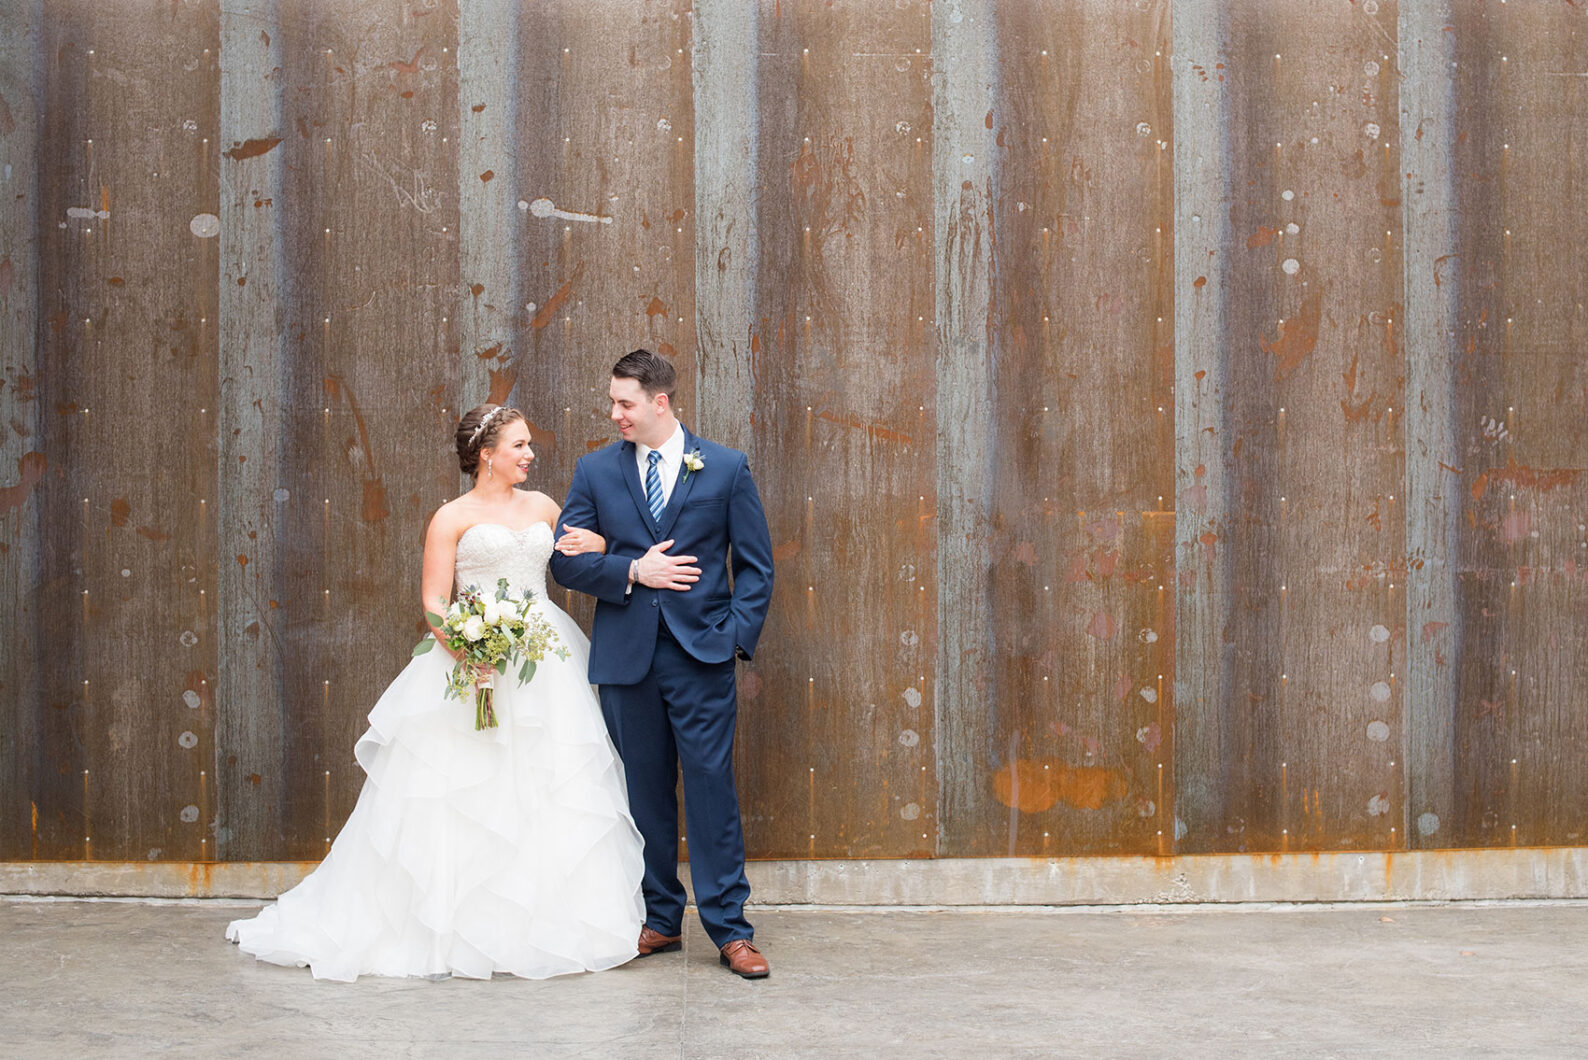 Durham wedding photos at The Cookery by Mikkel Paige Photography in North Carolina. The bride and the groom took pictures in front of a rustic, urban wall at the venue.